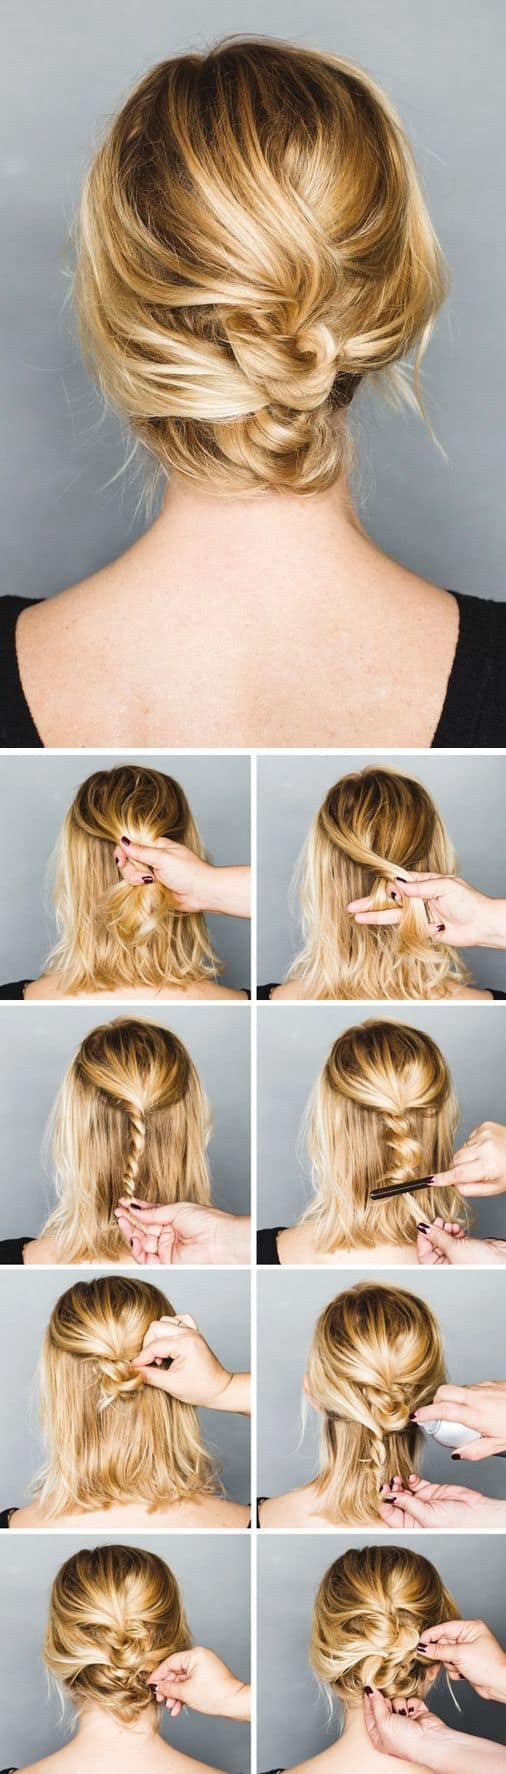 Easy Hair Tutorials For Cowgirls With A Short Mane - Cowgirl Magazine